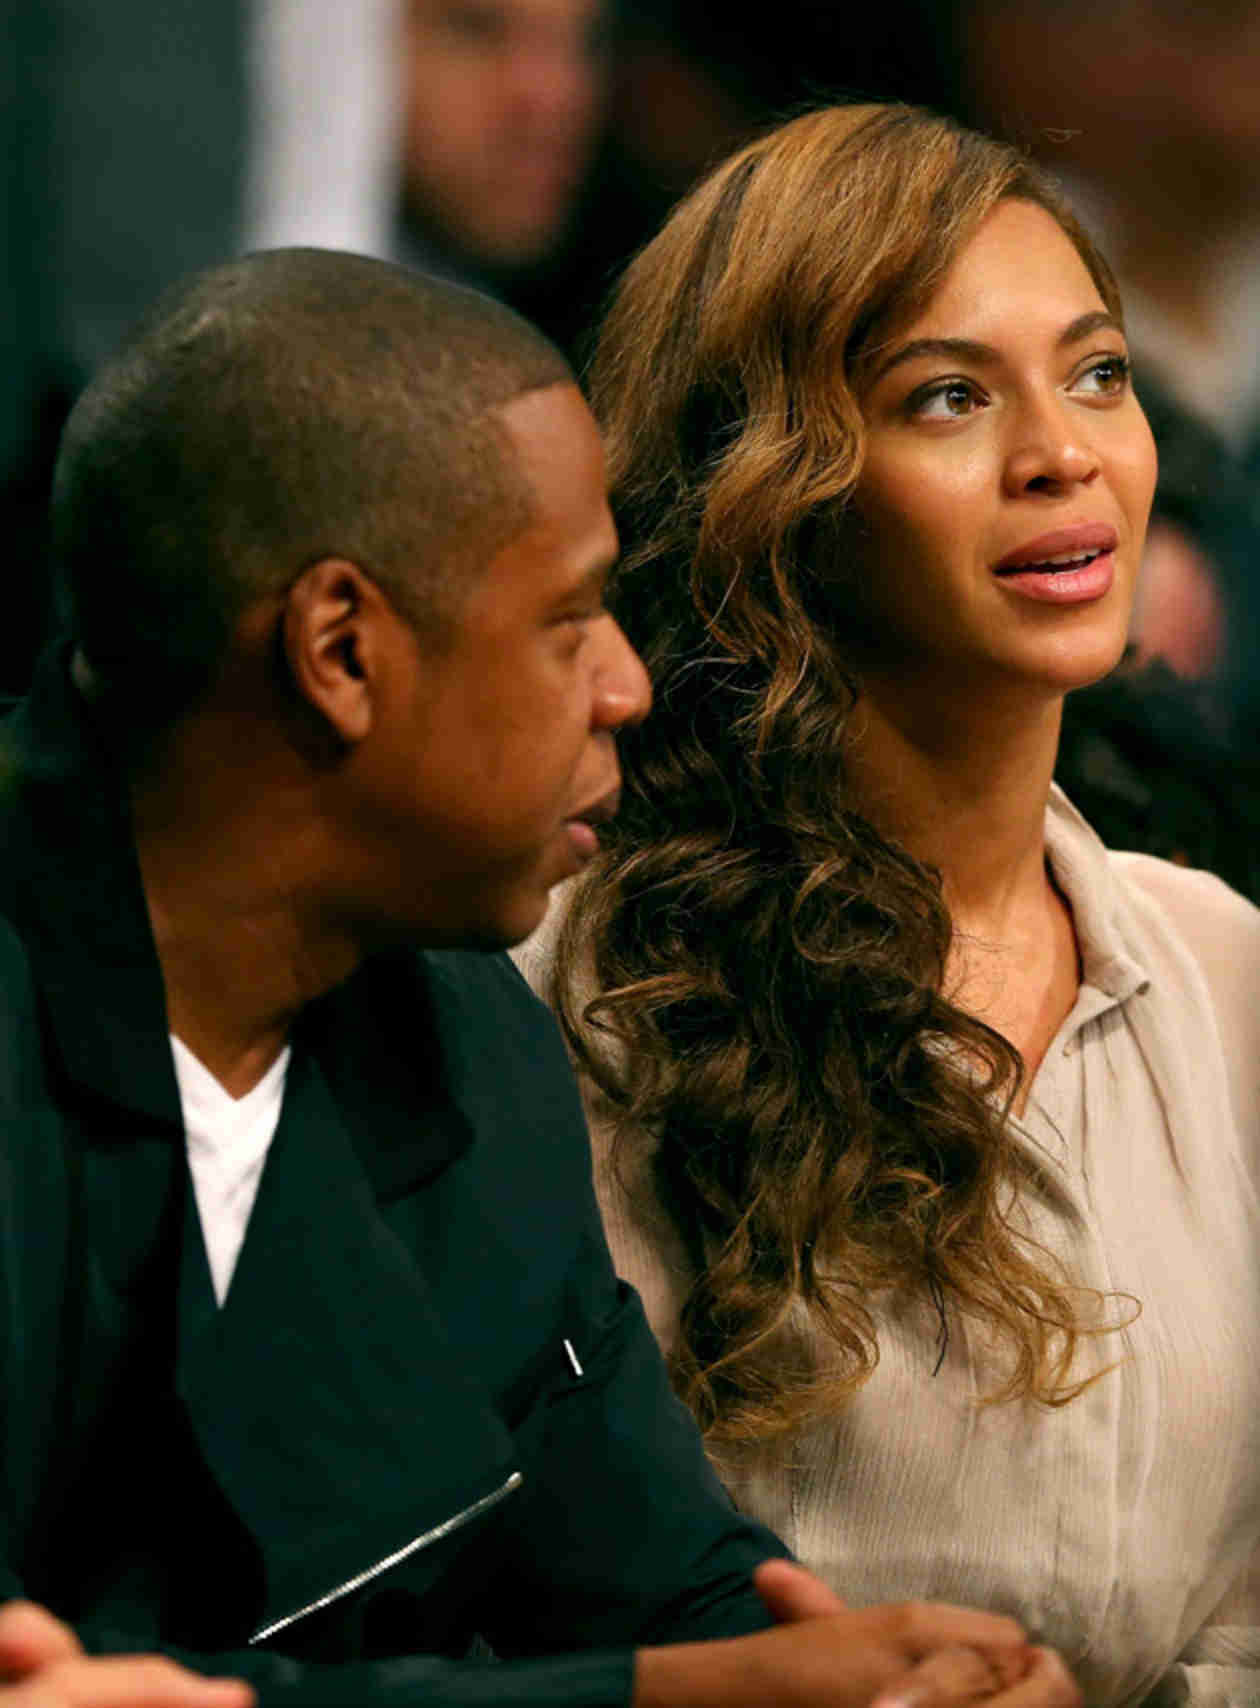 Jay-Z Planning a Vacation To Fix His Marriage With Beyonce —Report